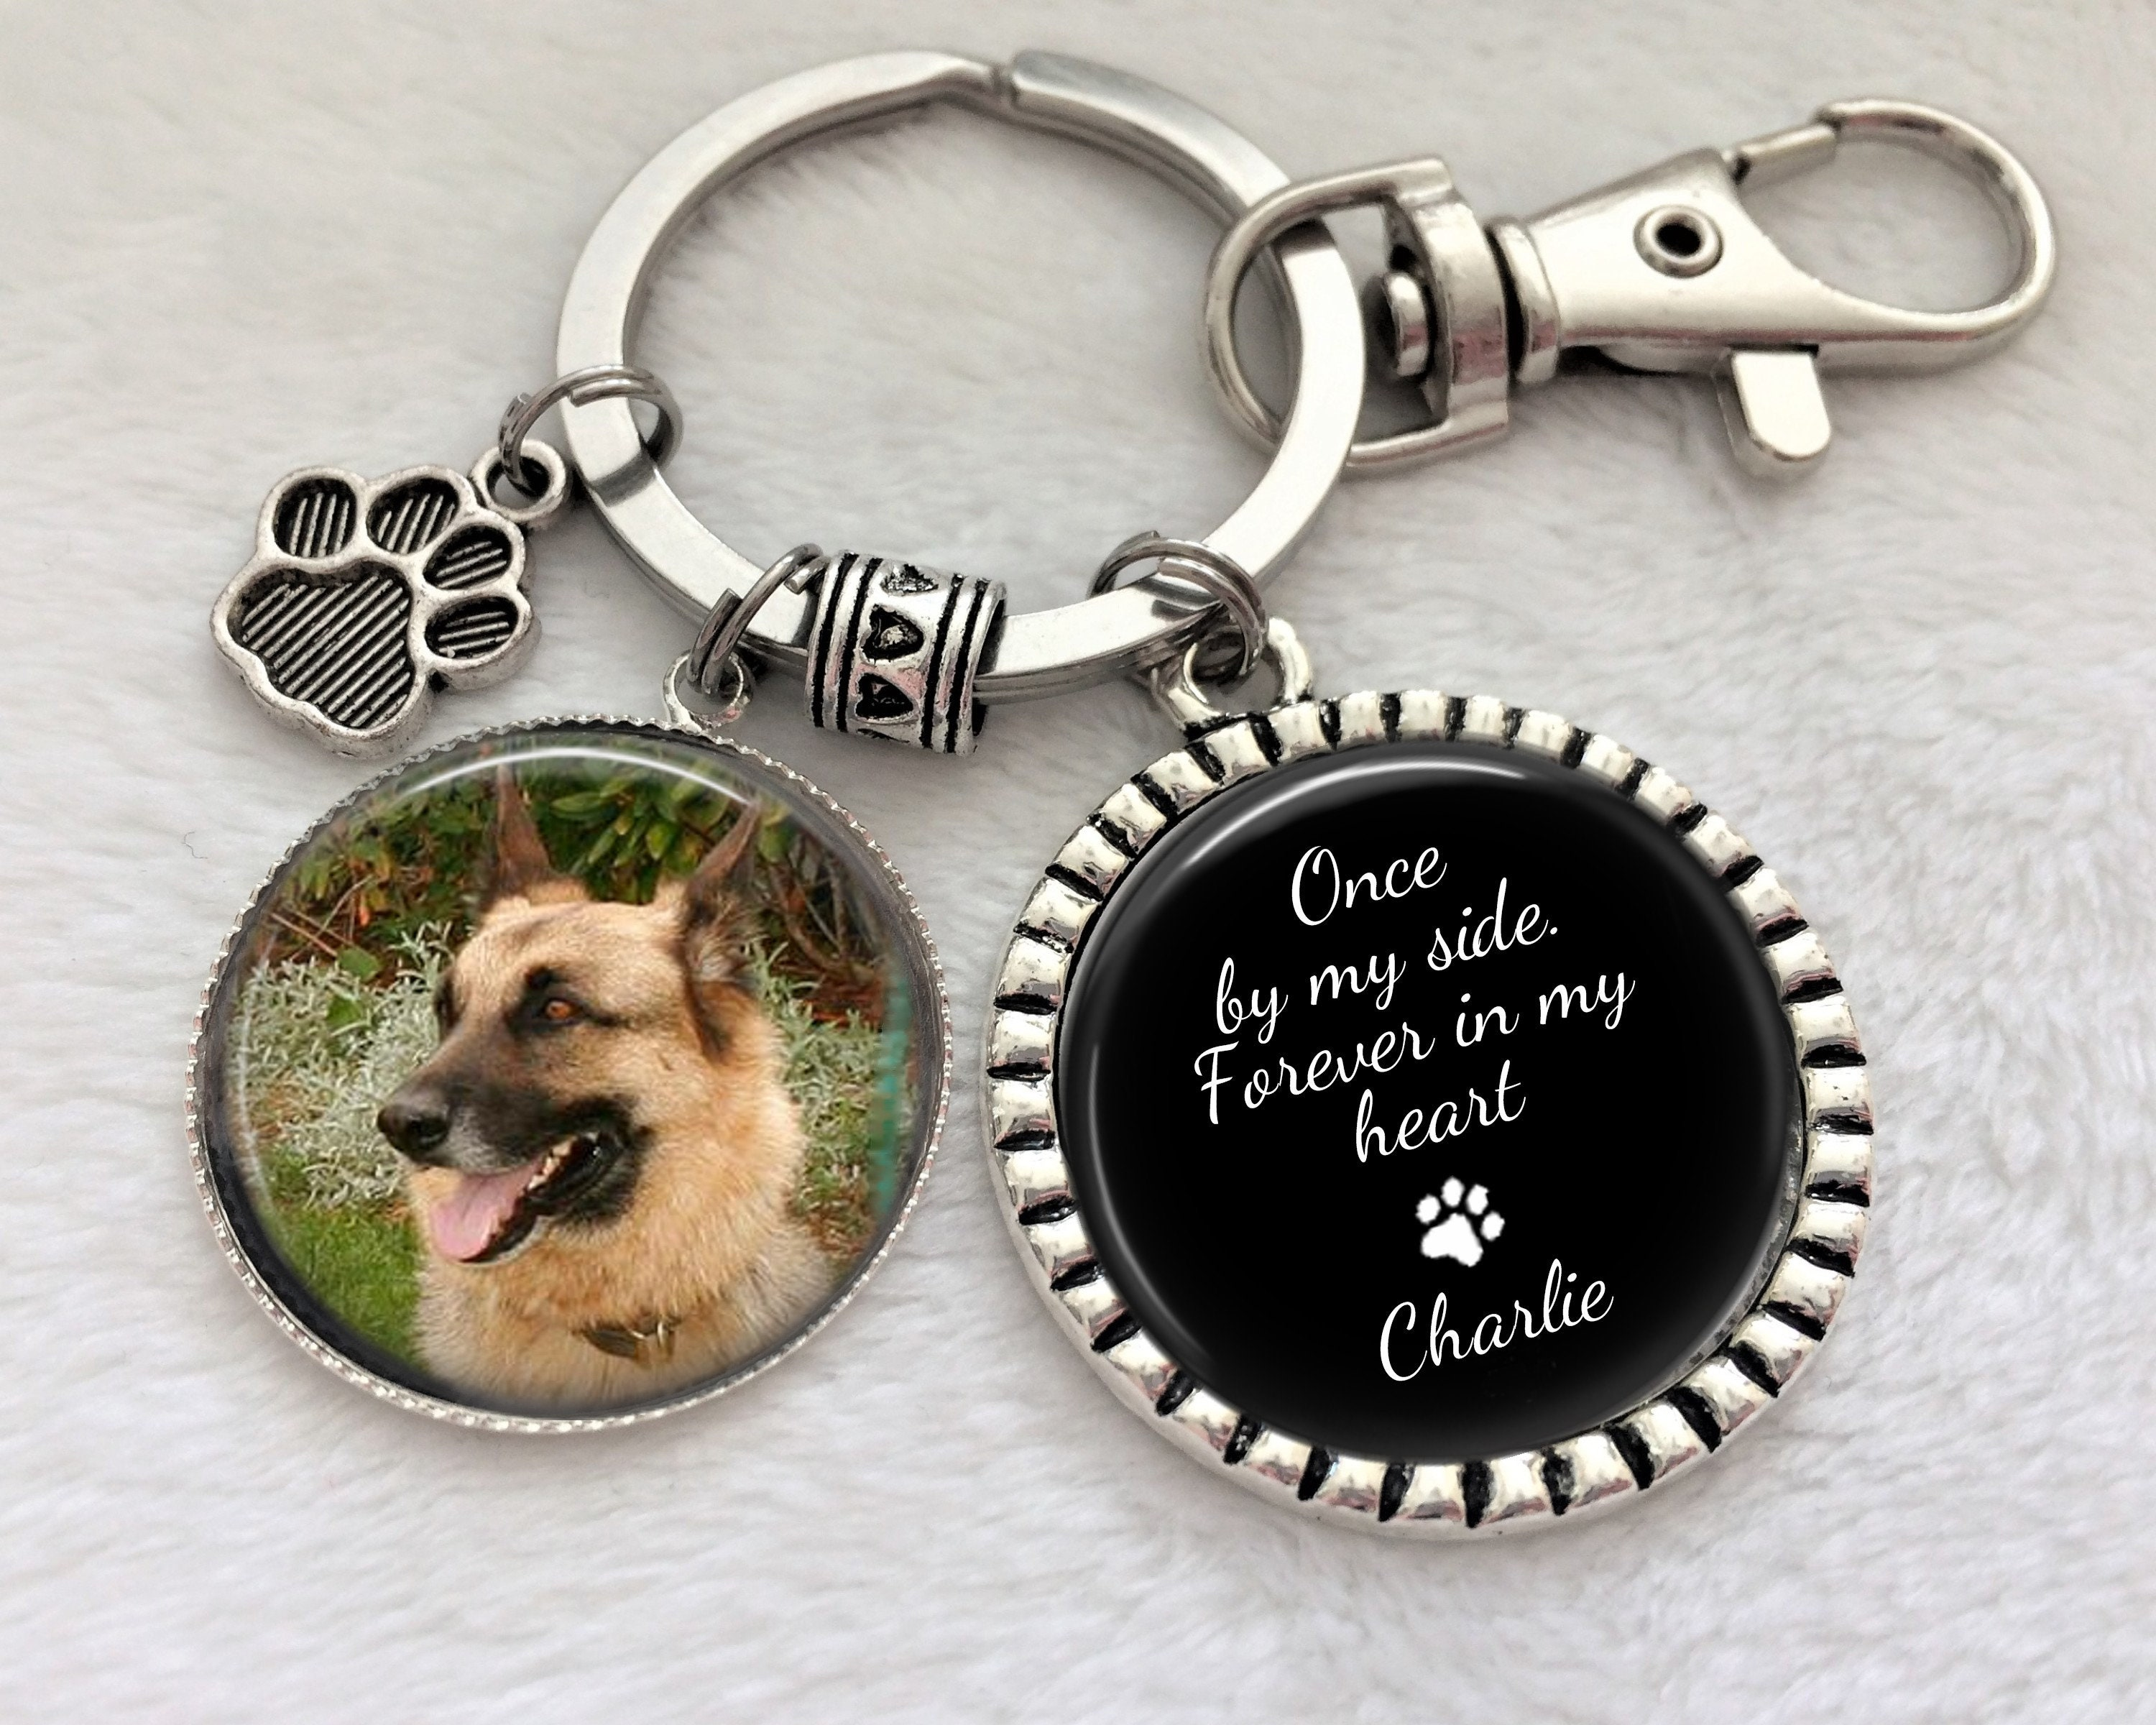 Furry Friends. Mans Best Friend Mourning and Grieving Loss of Pet In Memory of a Cat Key Chain Pet Memorial Remembrance of your Cat